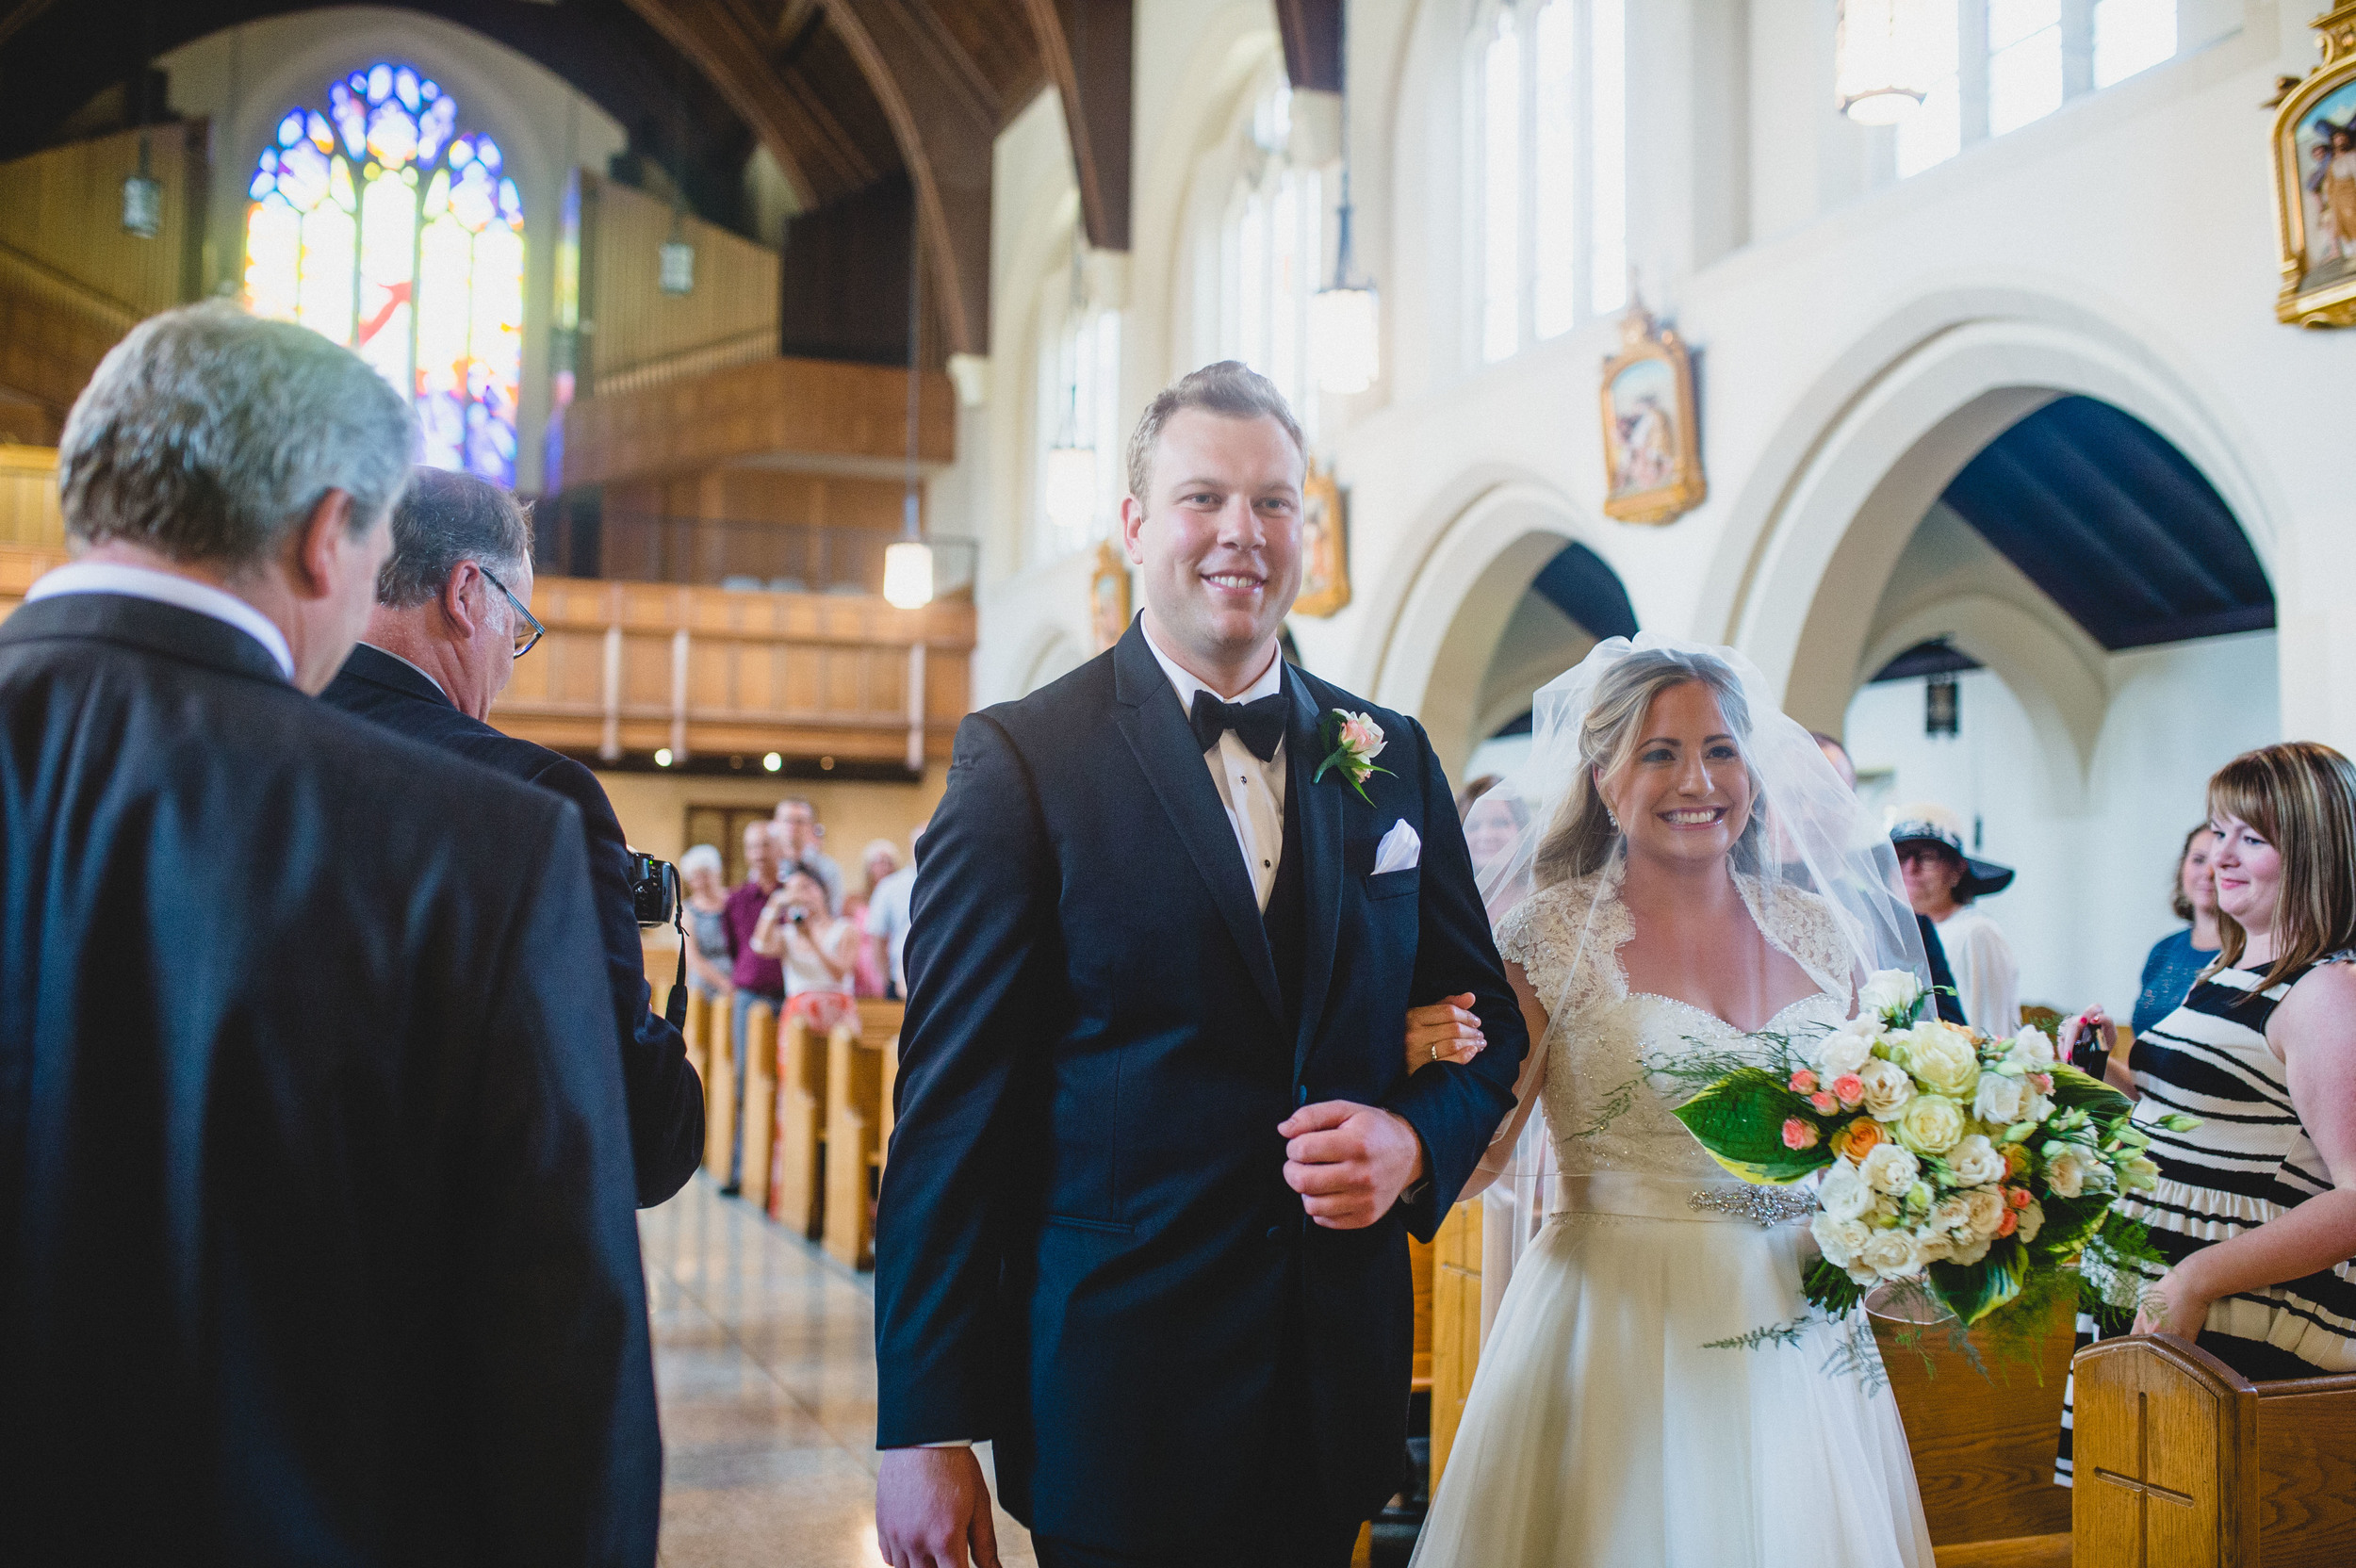 Vancouver St Augustine 's Church wedding photographer edward lai photography-35.jpg